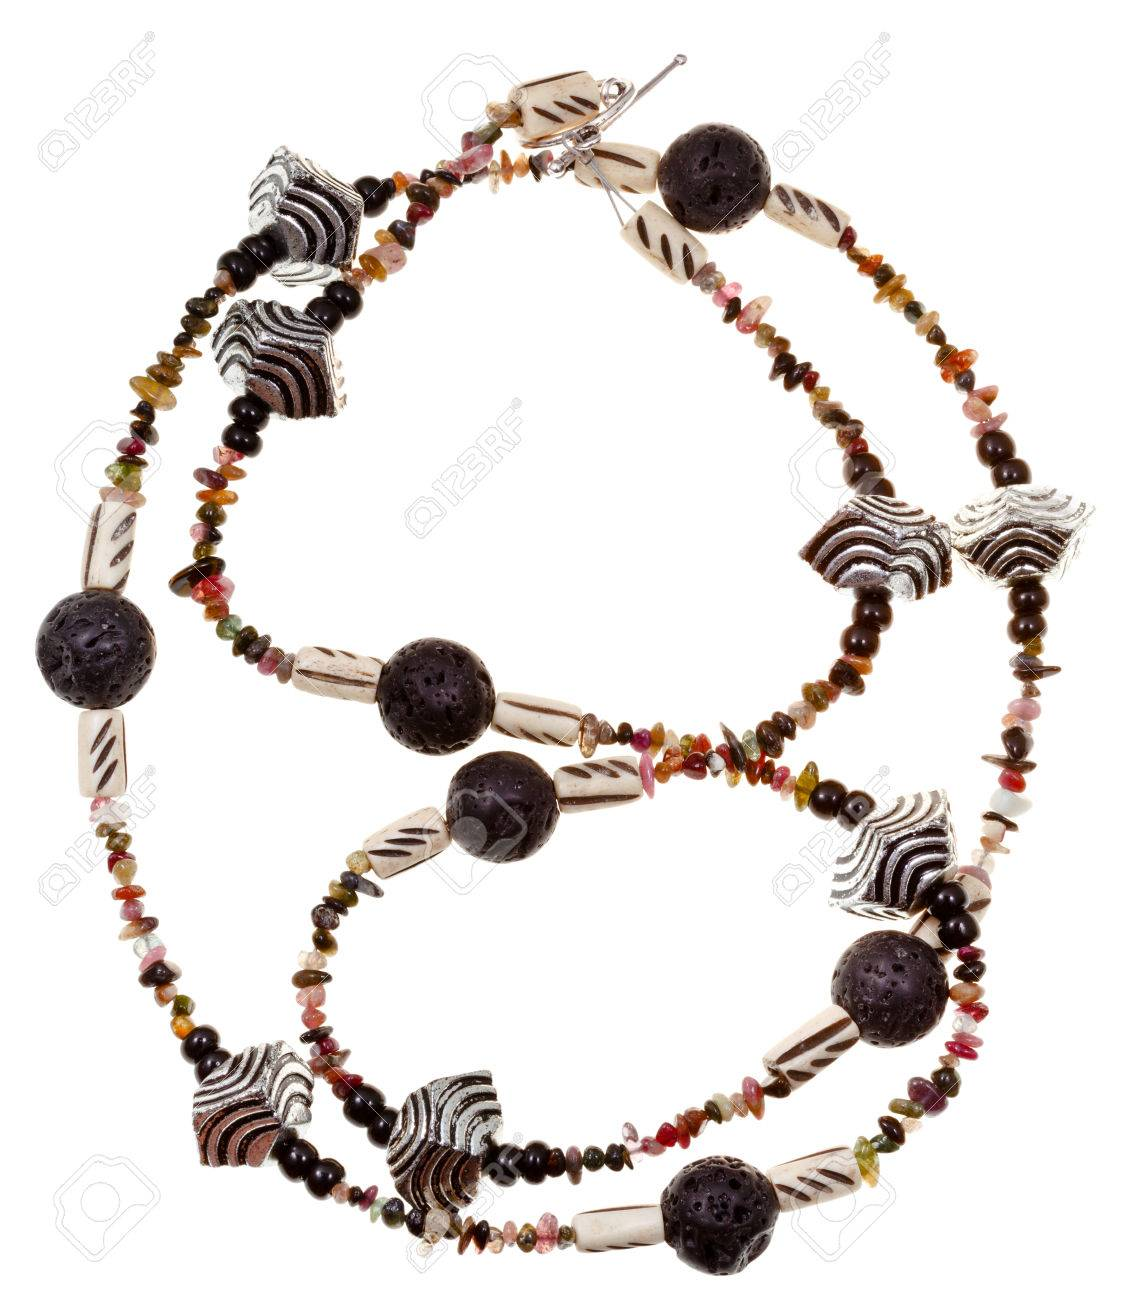 Top View Of Necklace From Beads Of Black Rock Lava Carved Bone Stock Photo Picture And Royalty Free Image Image 22302787